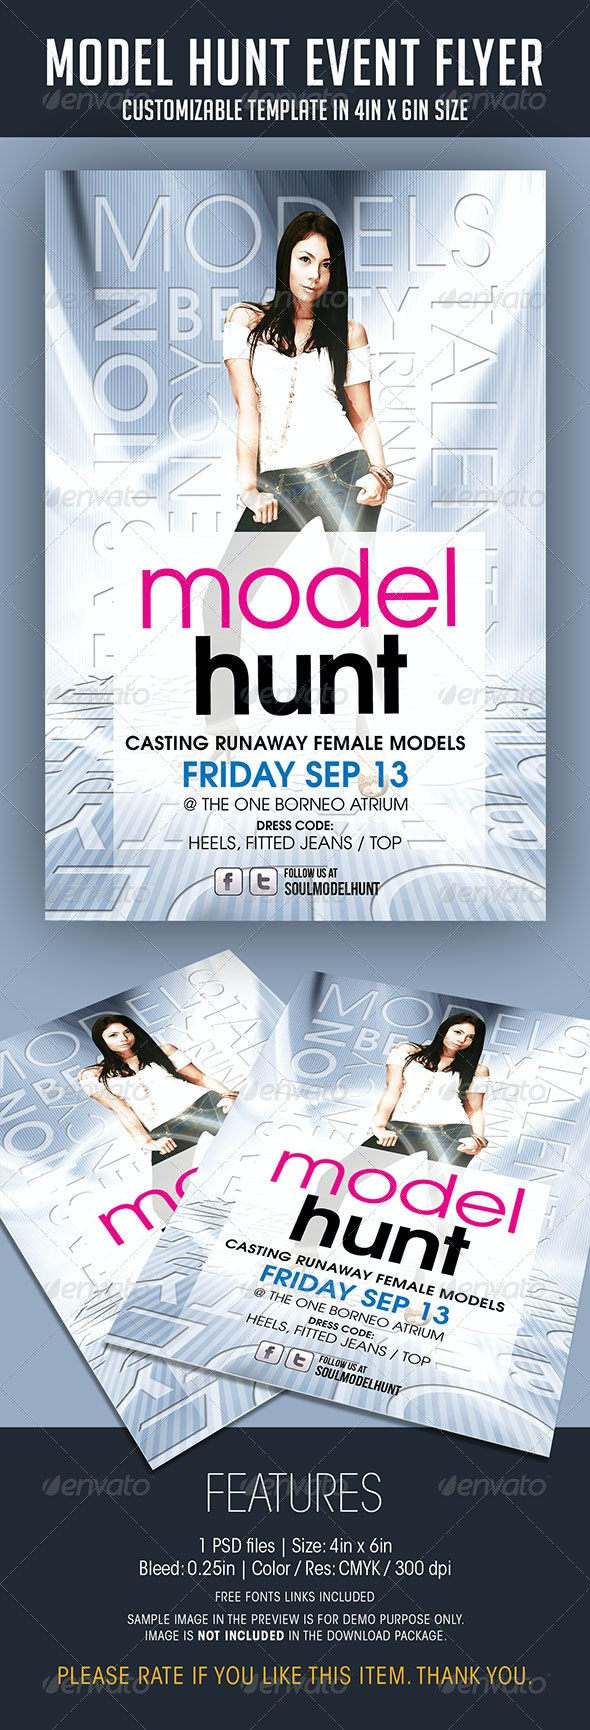 Model Hunt Event Flyer - Events Flyers